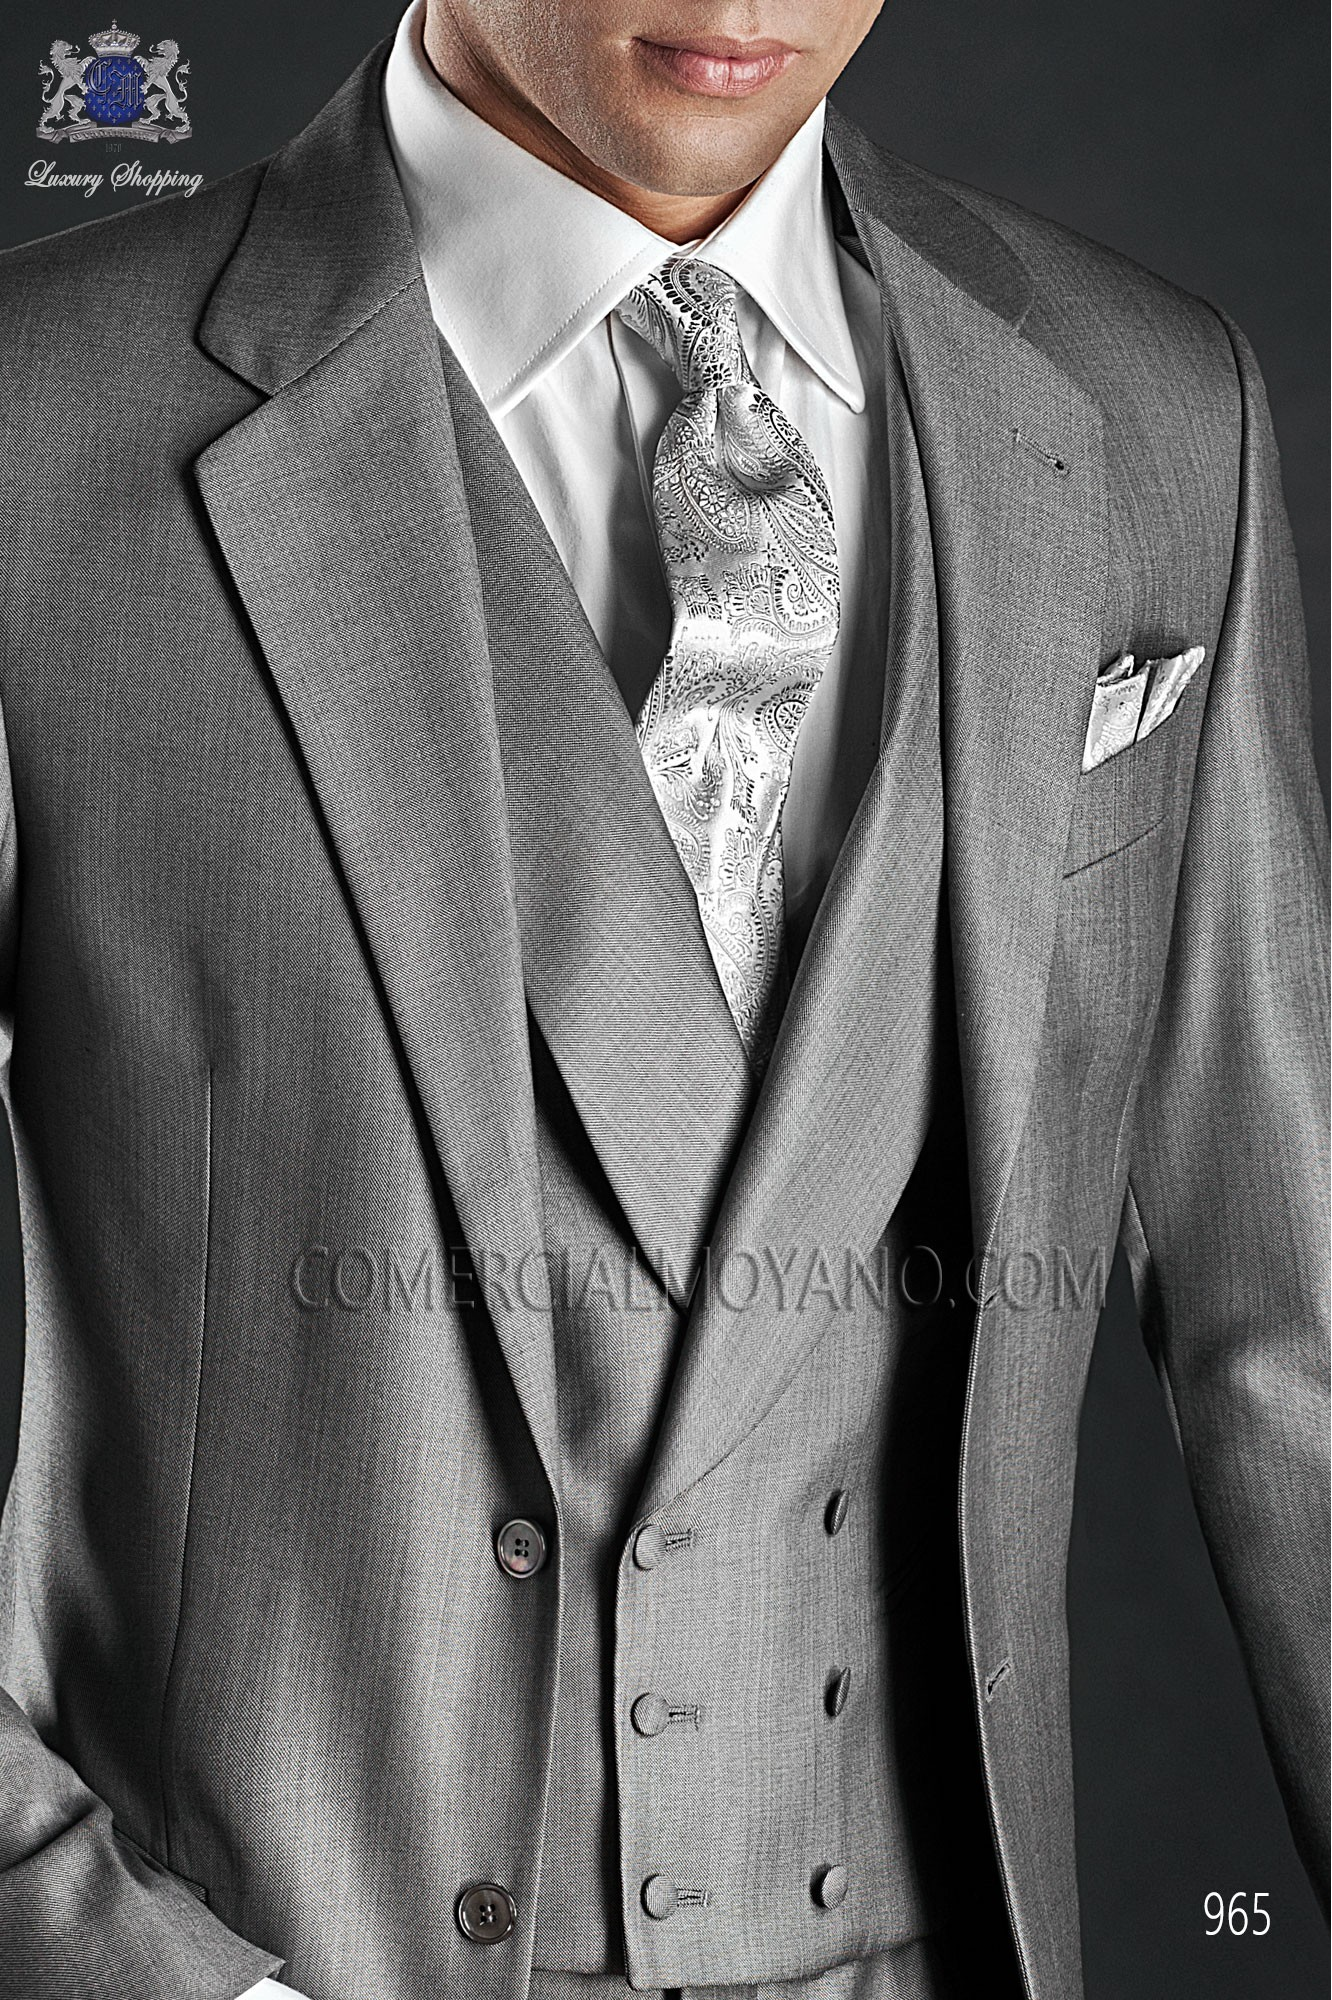 Gentleman grey men wedding suit, model: 965 Ottavio Nuccio Gala ...